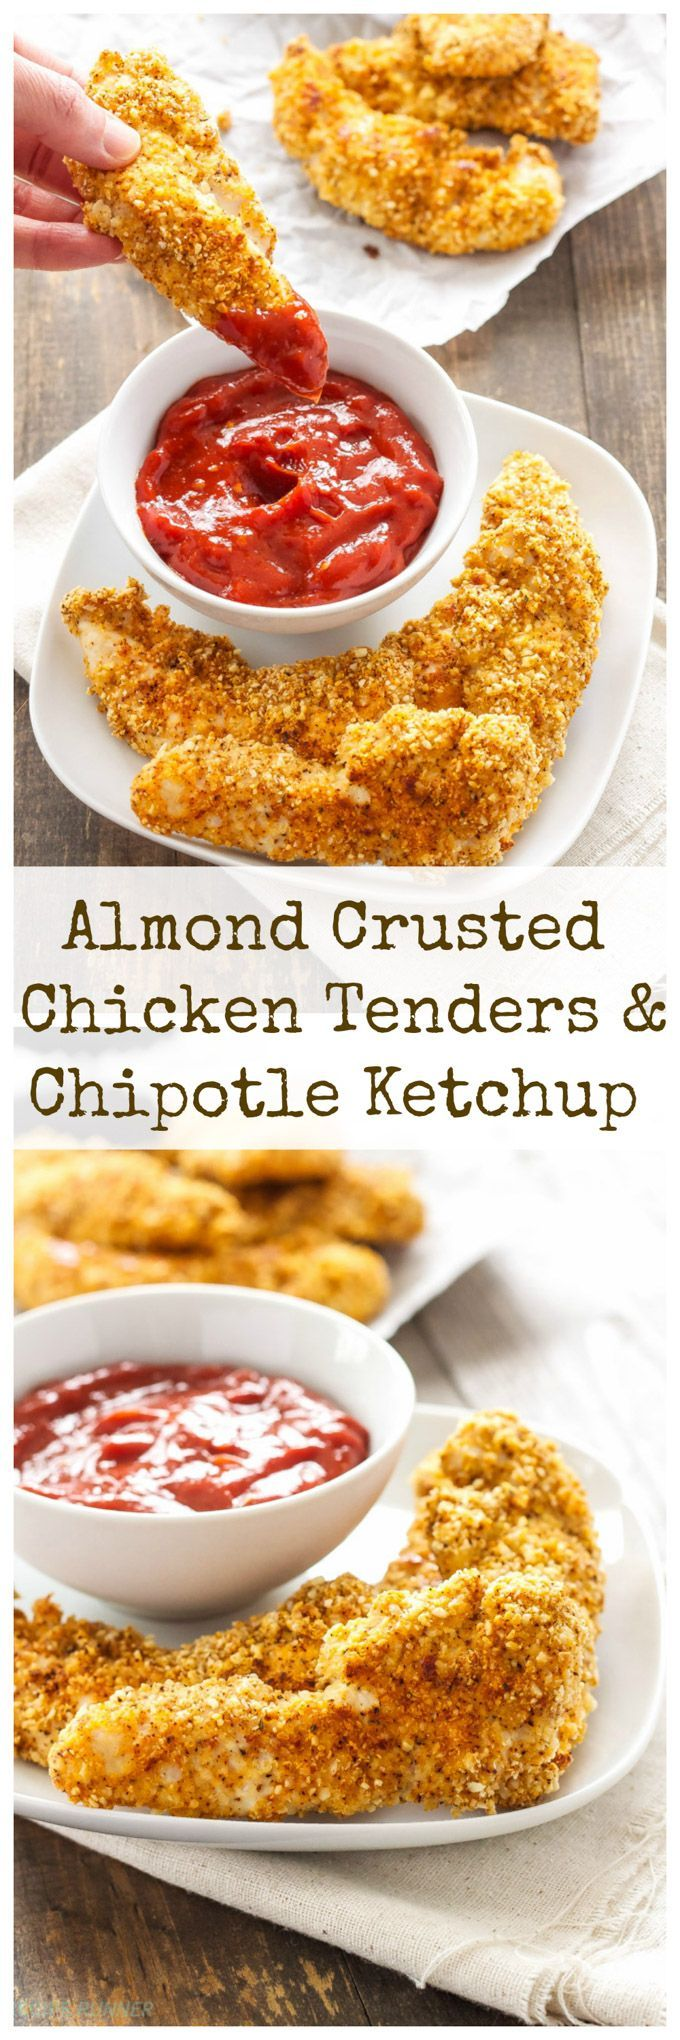 Almond Crusted Chicken Tenders with Chipotle Ketchup | These healthy and gluten free baked chicken tenders are an easy meal the whole family will love!